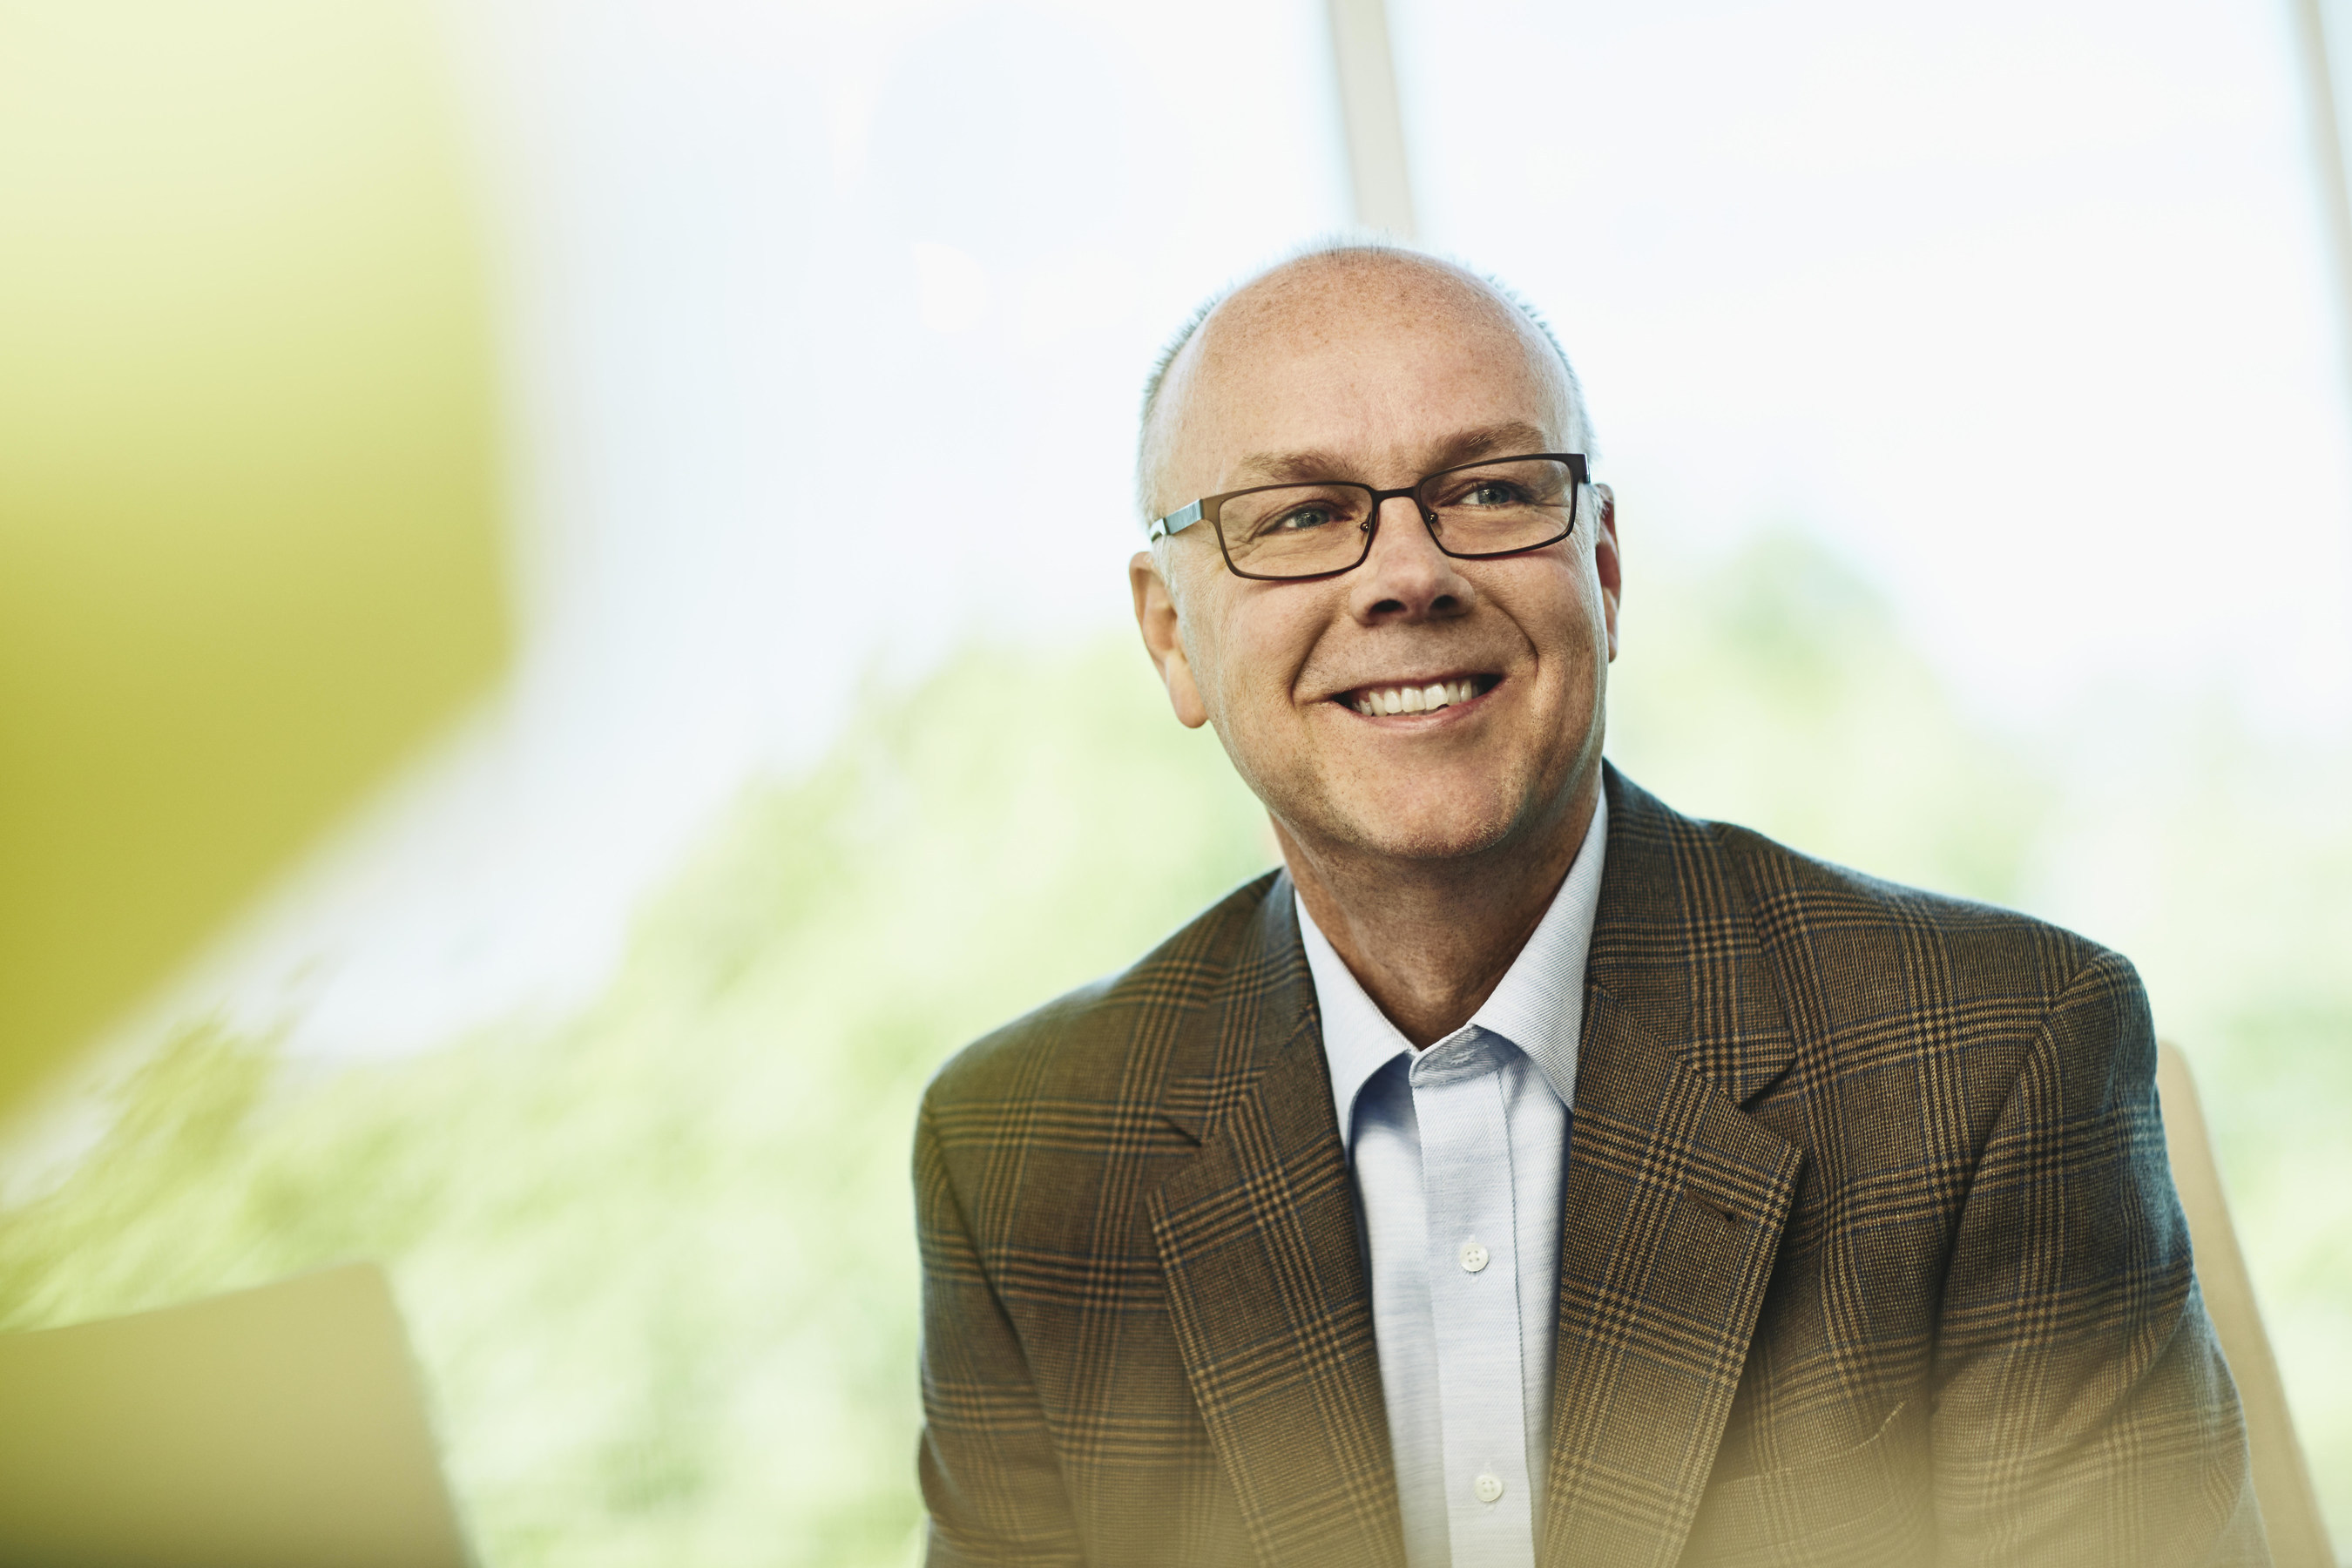 Randstad North America's chief human resources officer Jim Link to keynote SHRM-Atlanta's SOAHR 2019